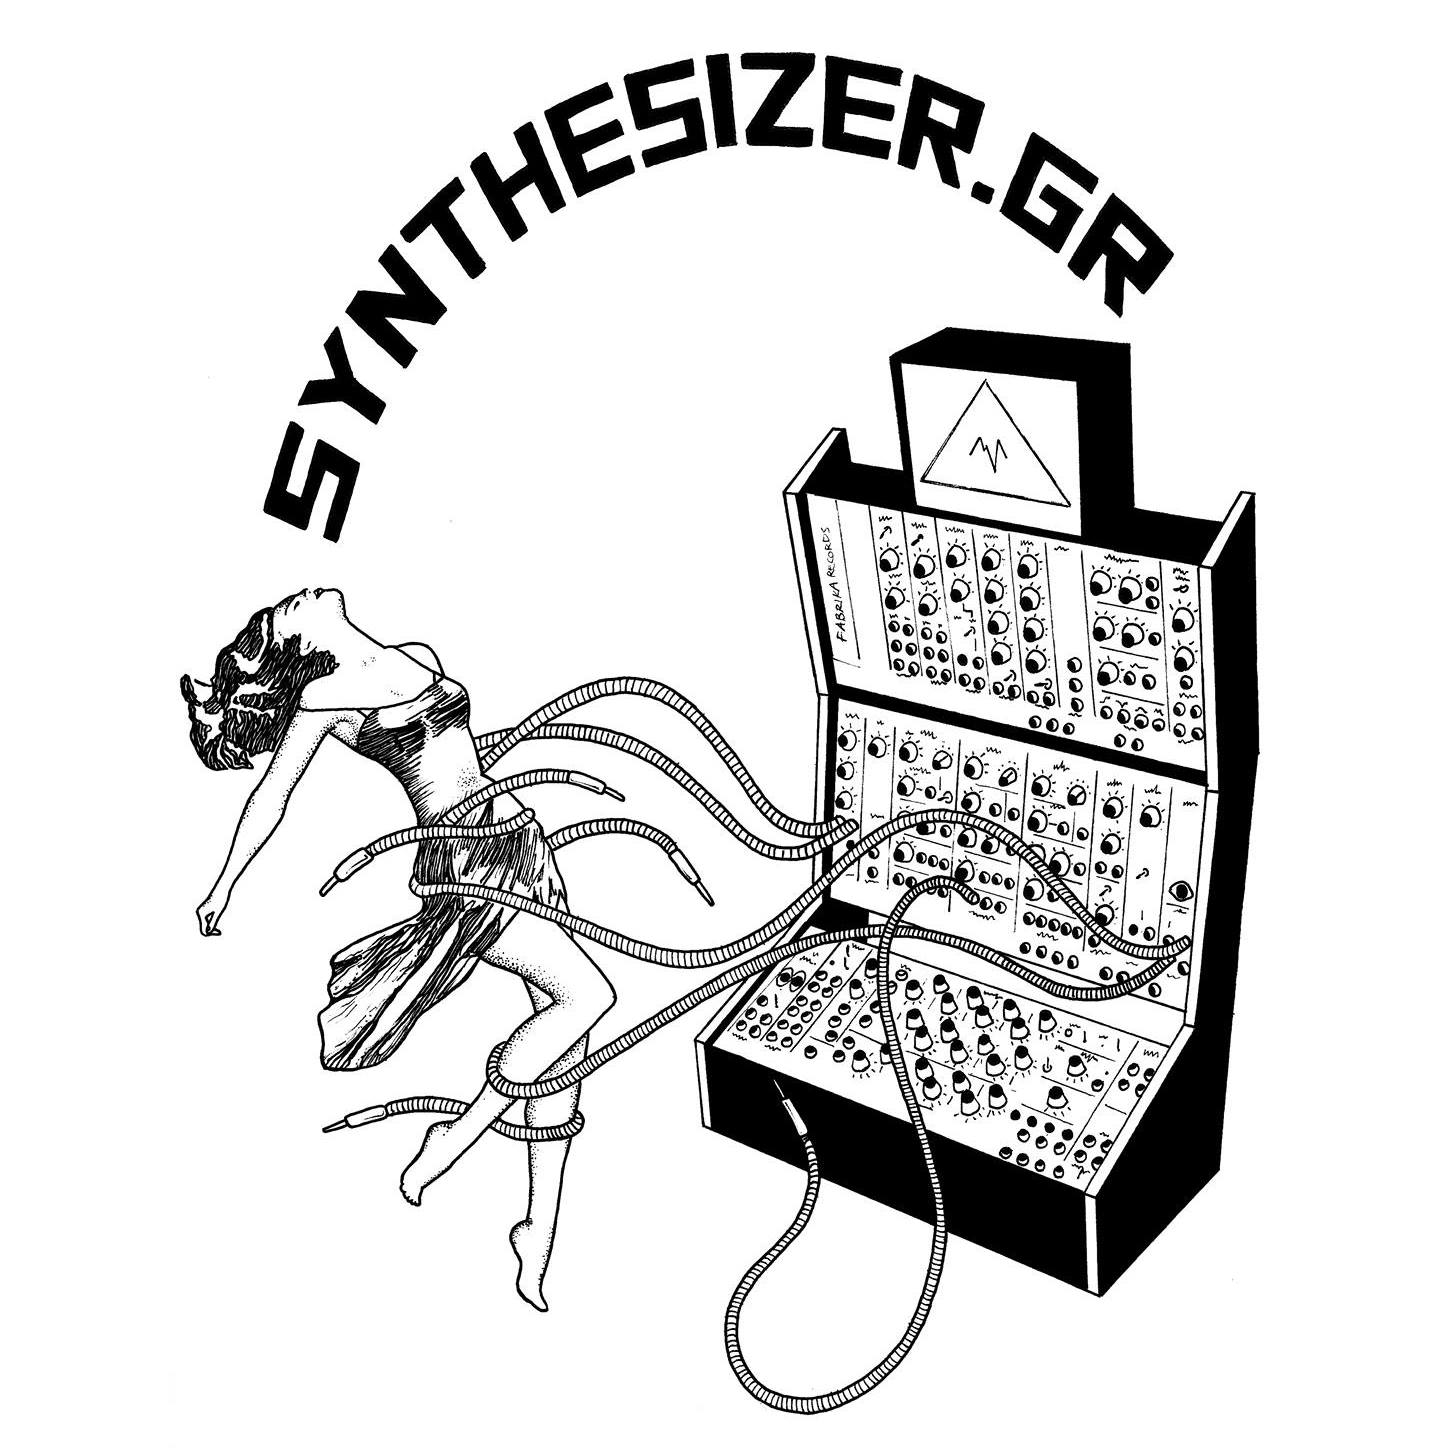 Synthesizer.gr